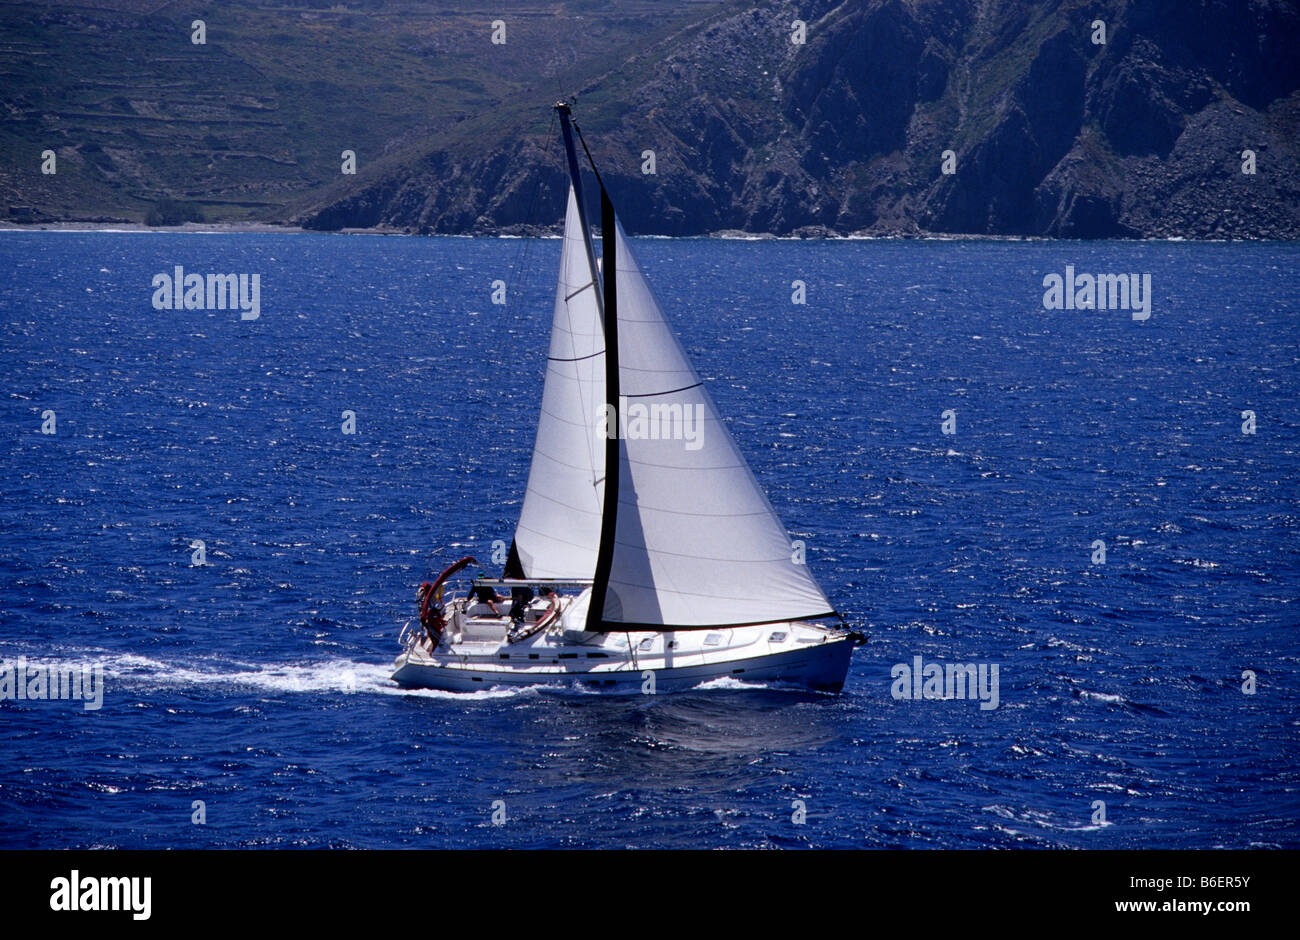 Yacht in front of the coast of the island of Paros, Greece, Europe - Stock Image